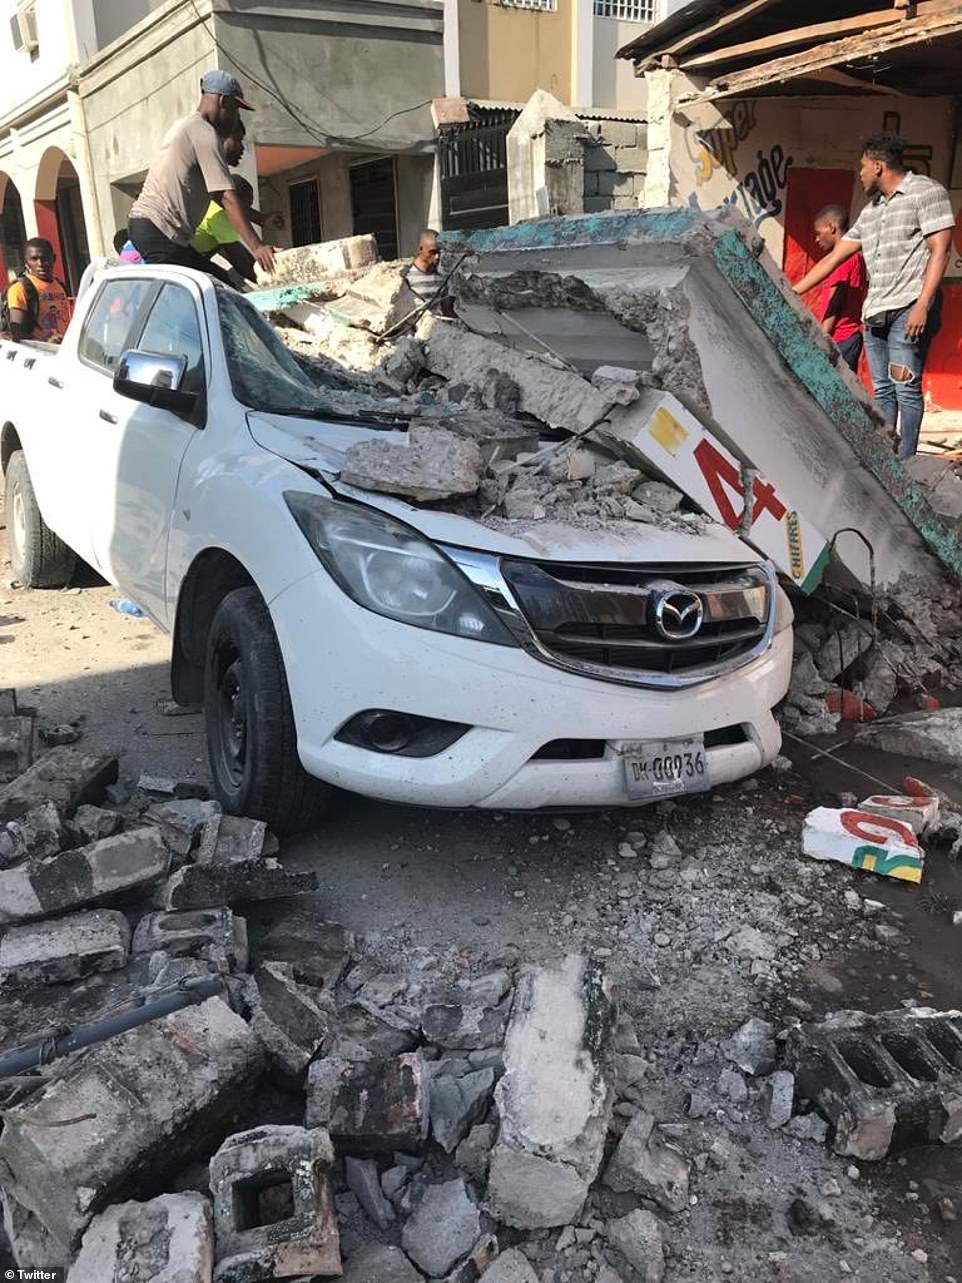 Photos circulating social media show the earthquake's damage, which was 0.2 stronger than the 2010 quake that killed 250,000 people and flattened swathes of buildings, leaving many homeless